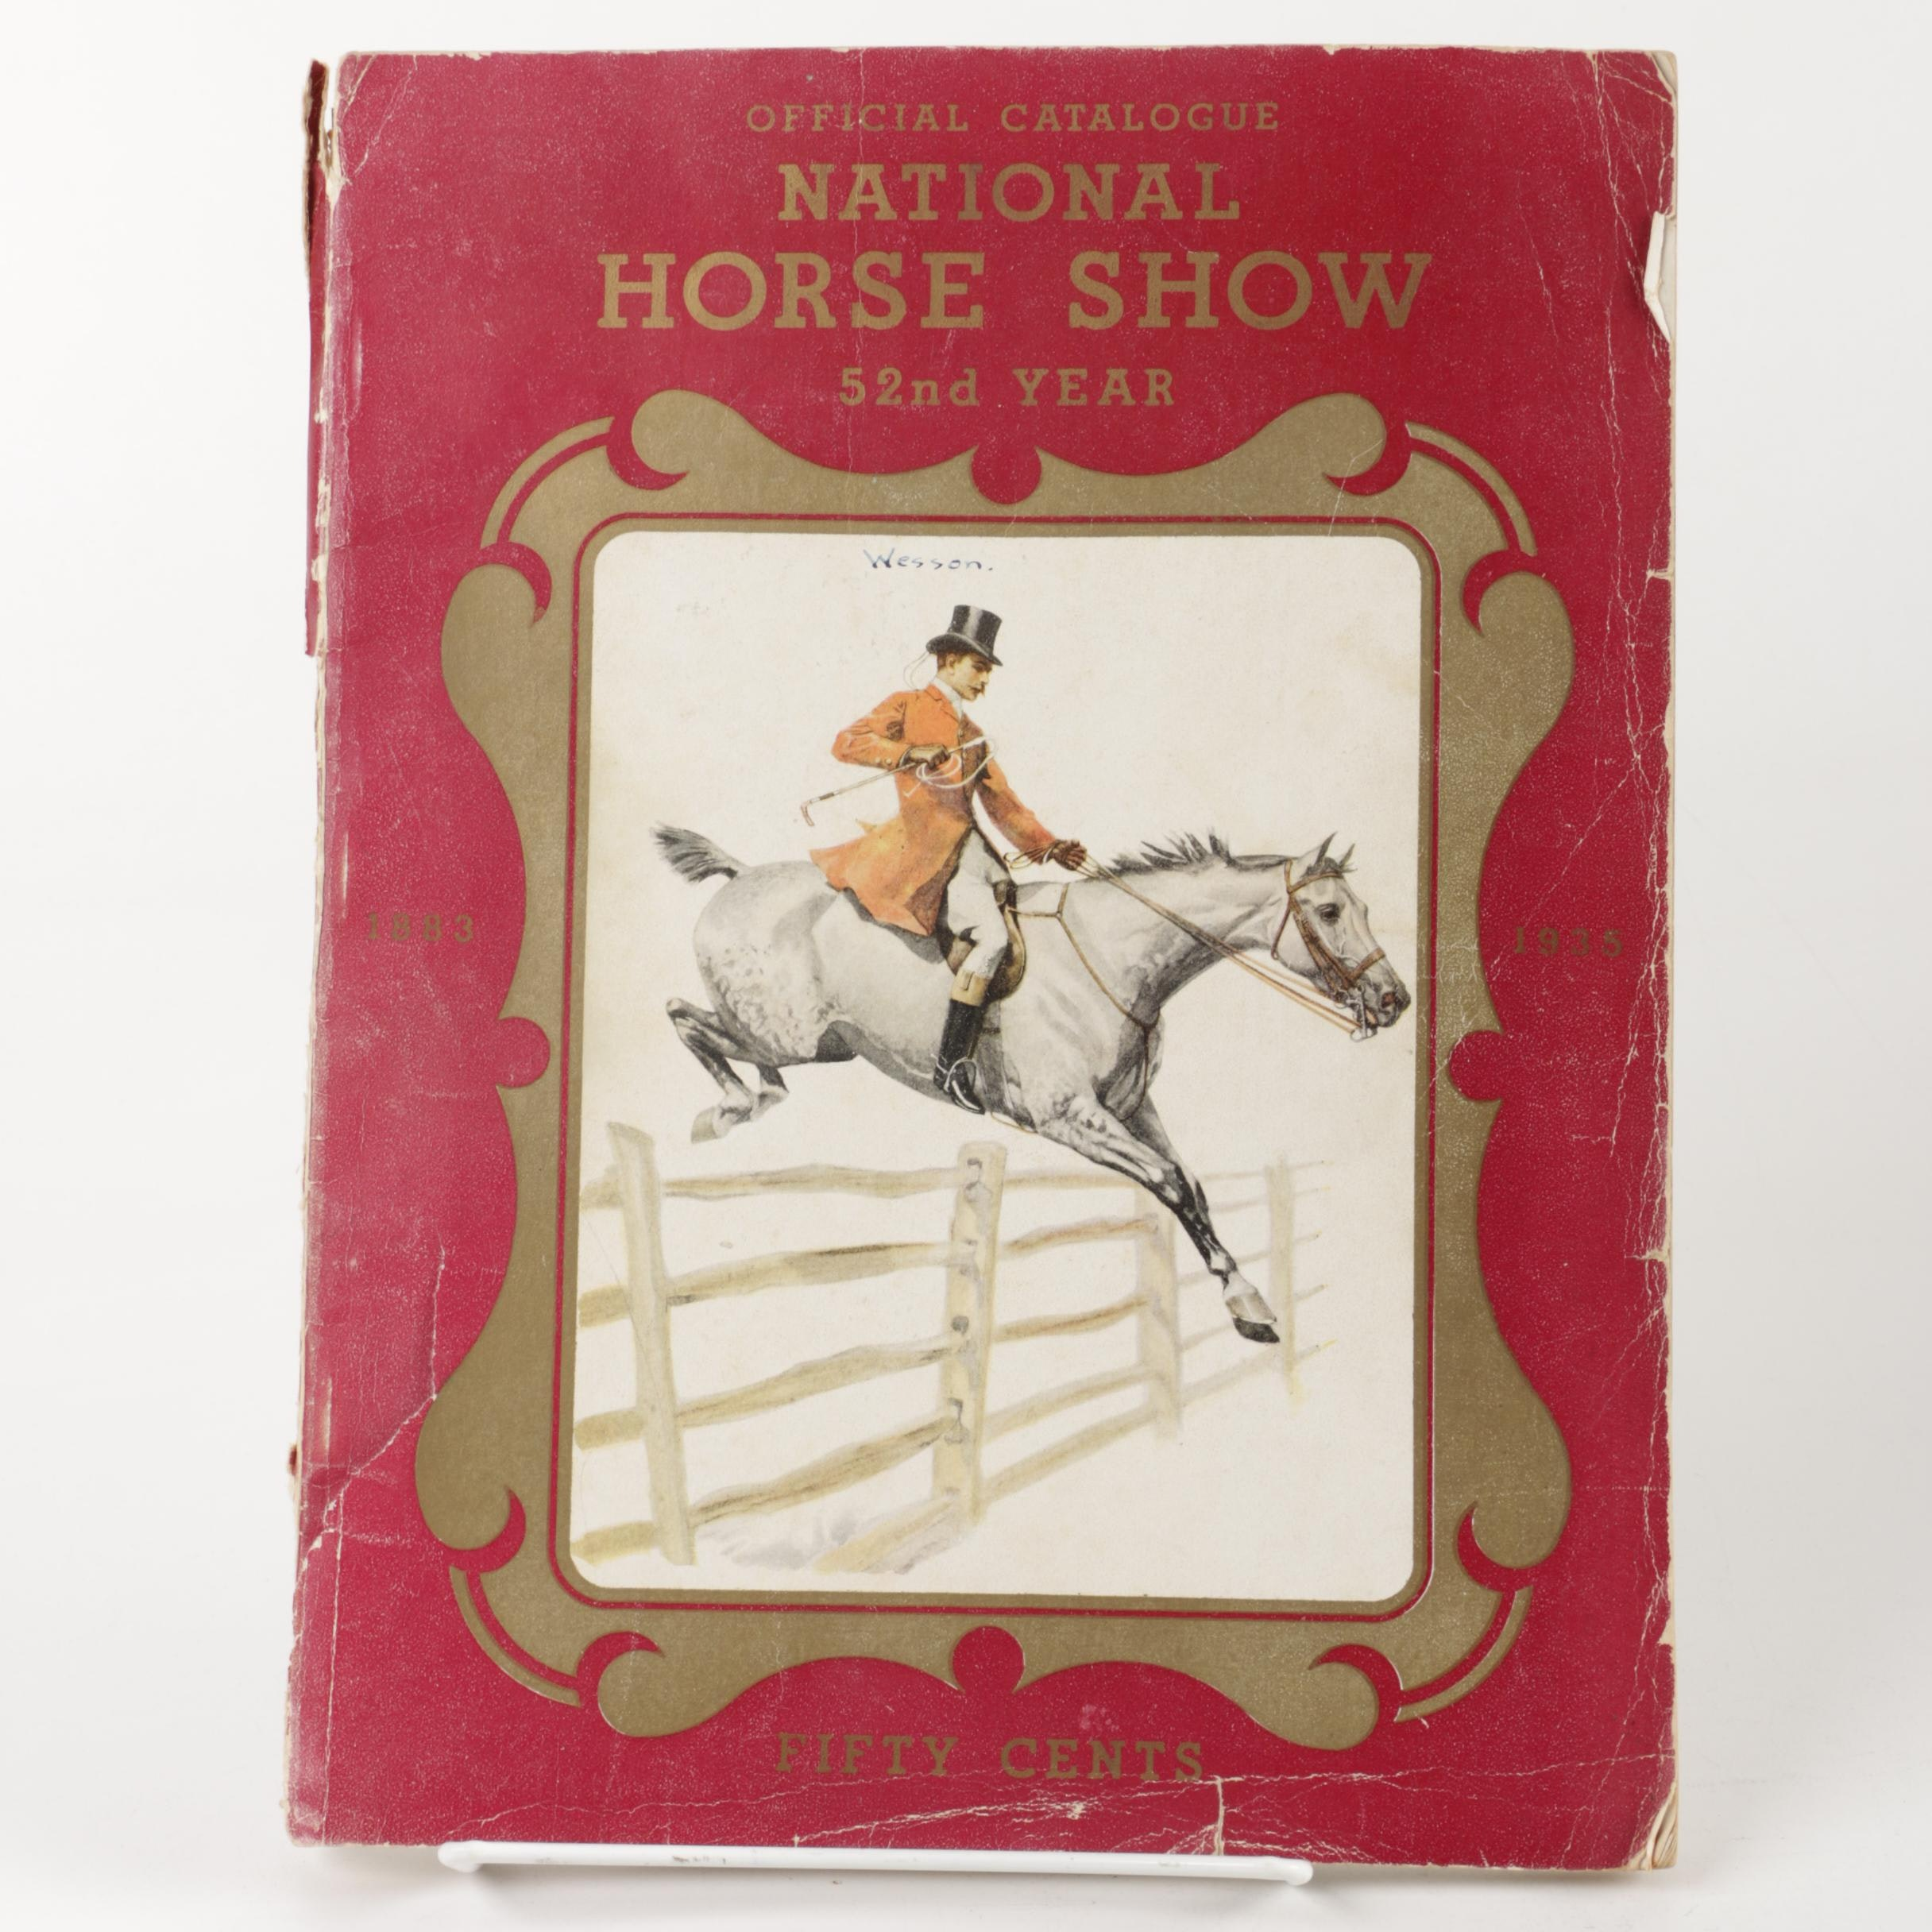 1935 Catalog from the 52nd National Horse Show